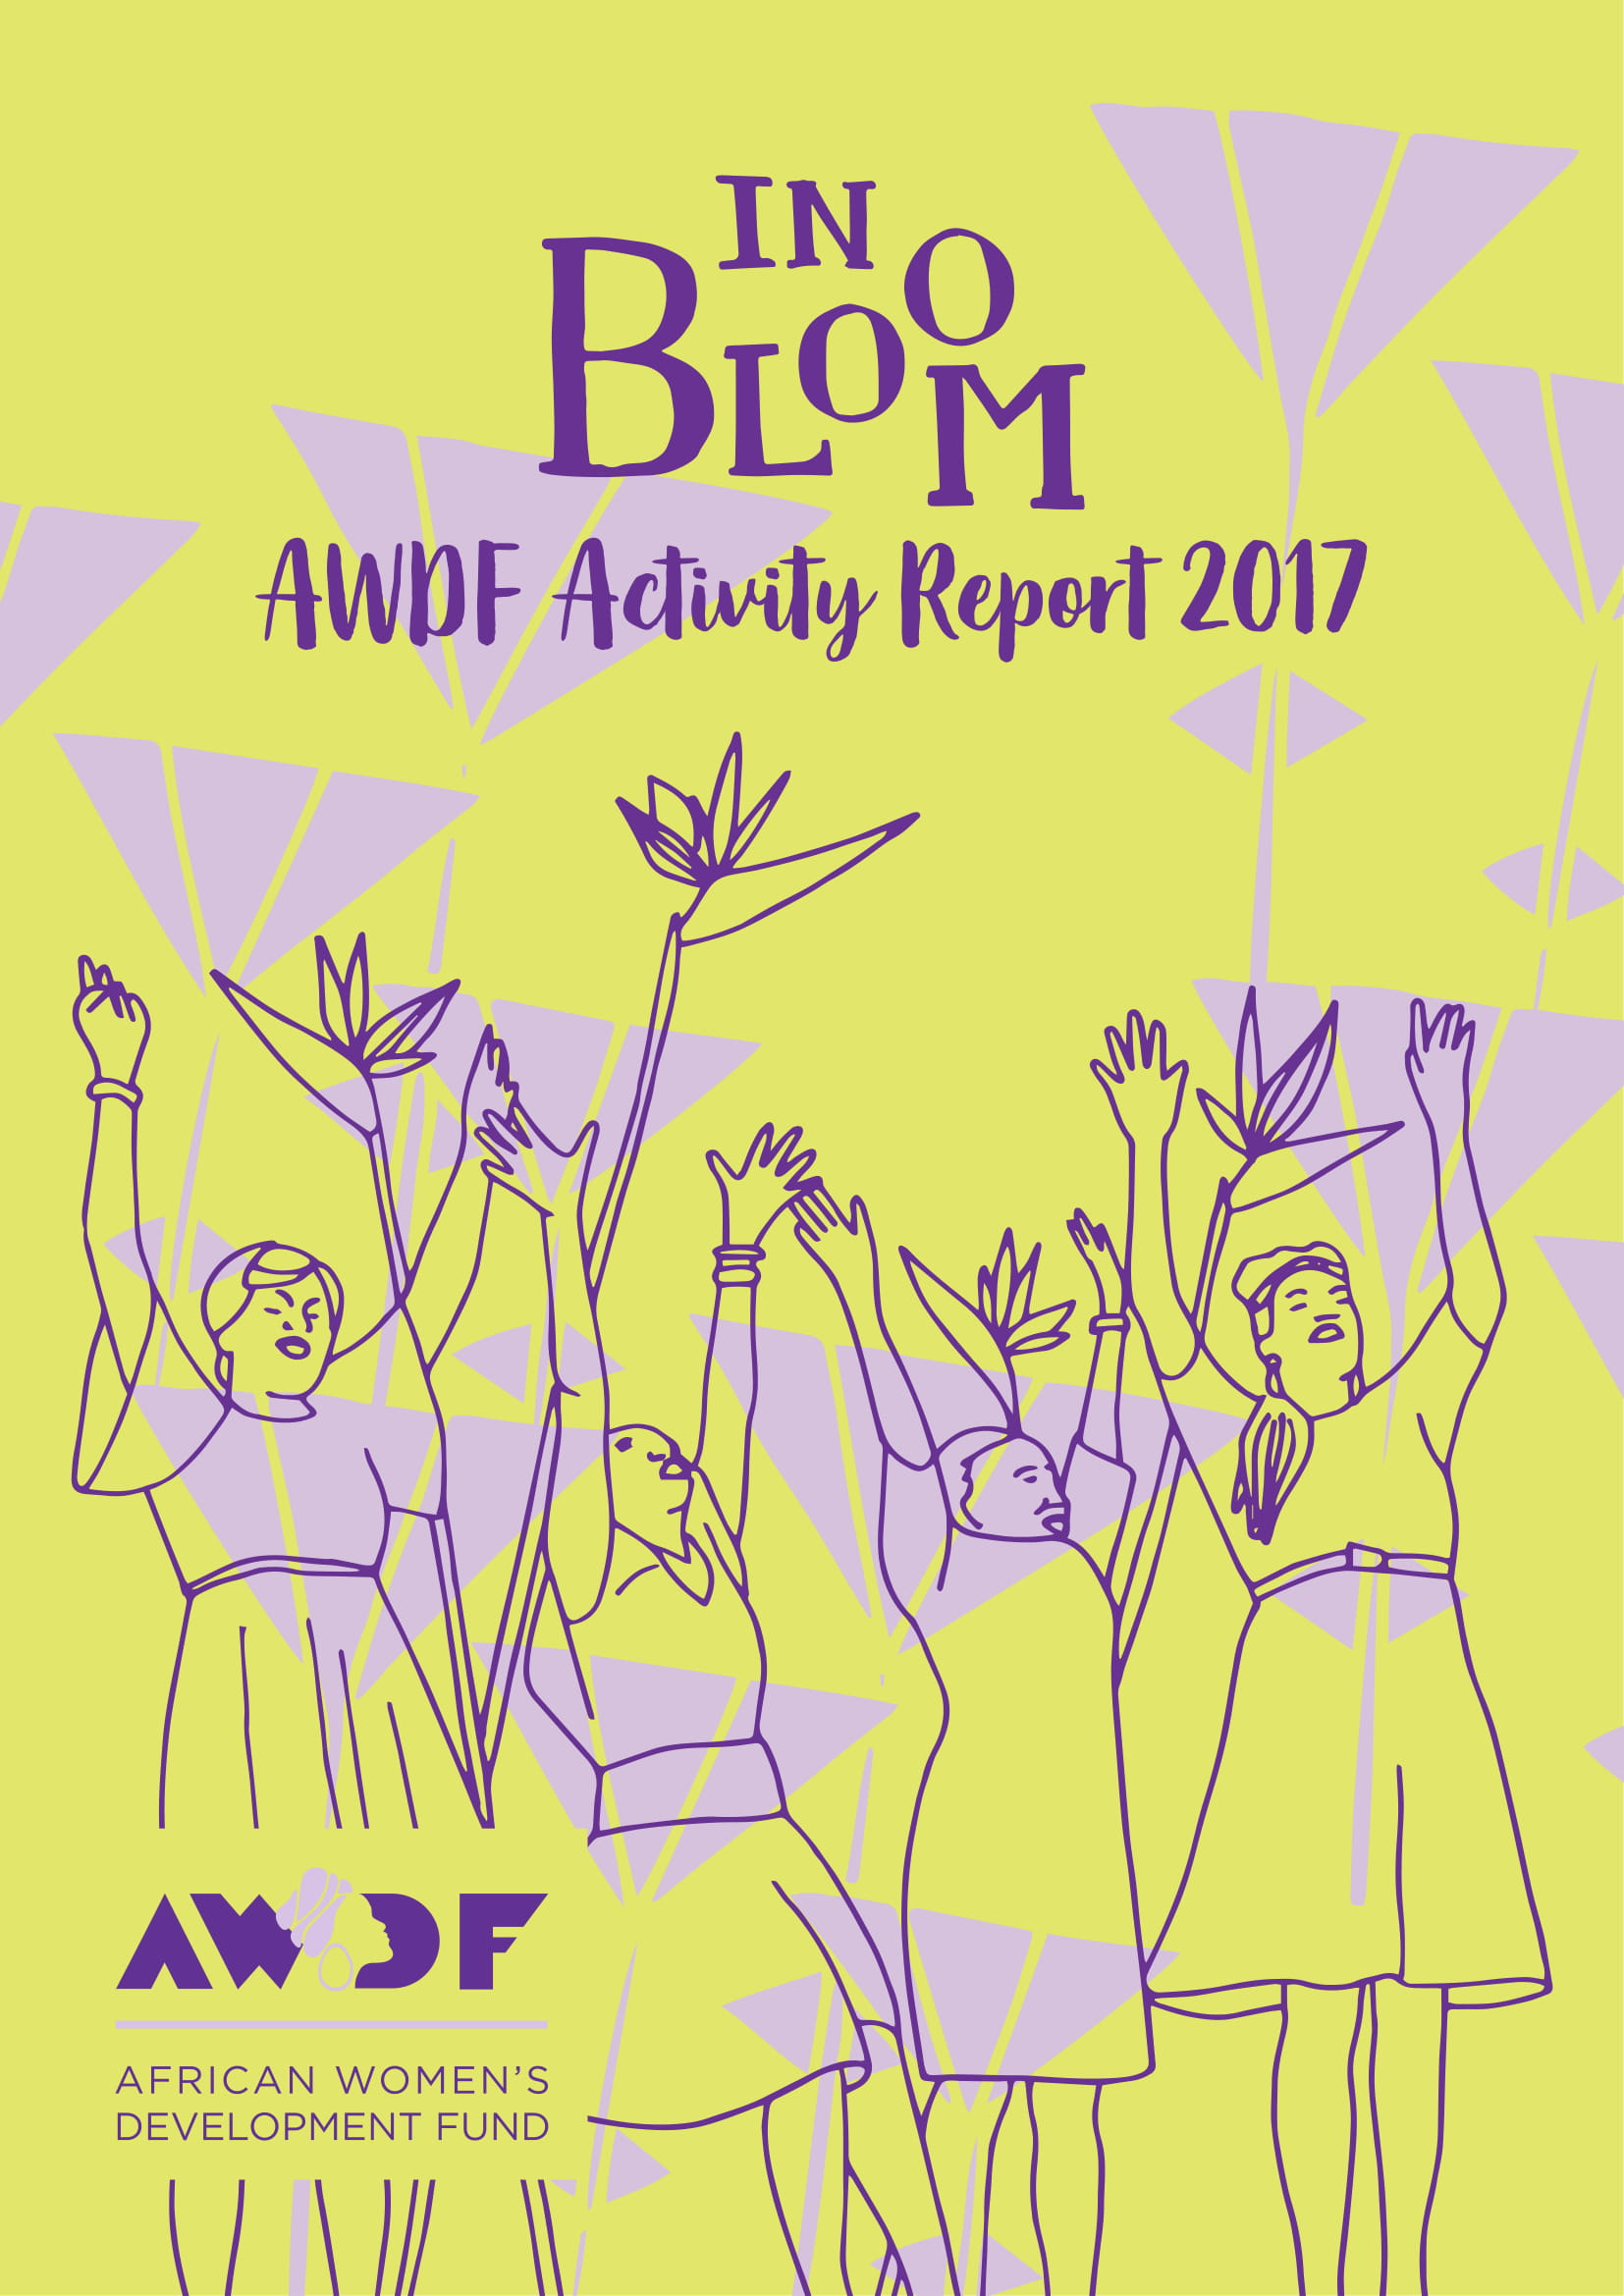 IN BLOOM: AWDF ACTIVITY REPORT 2017